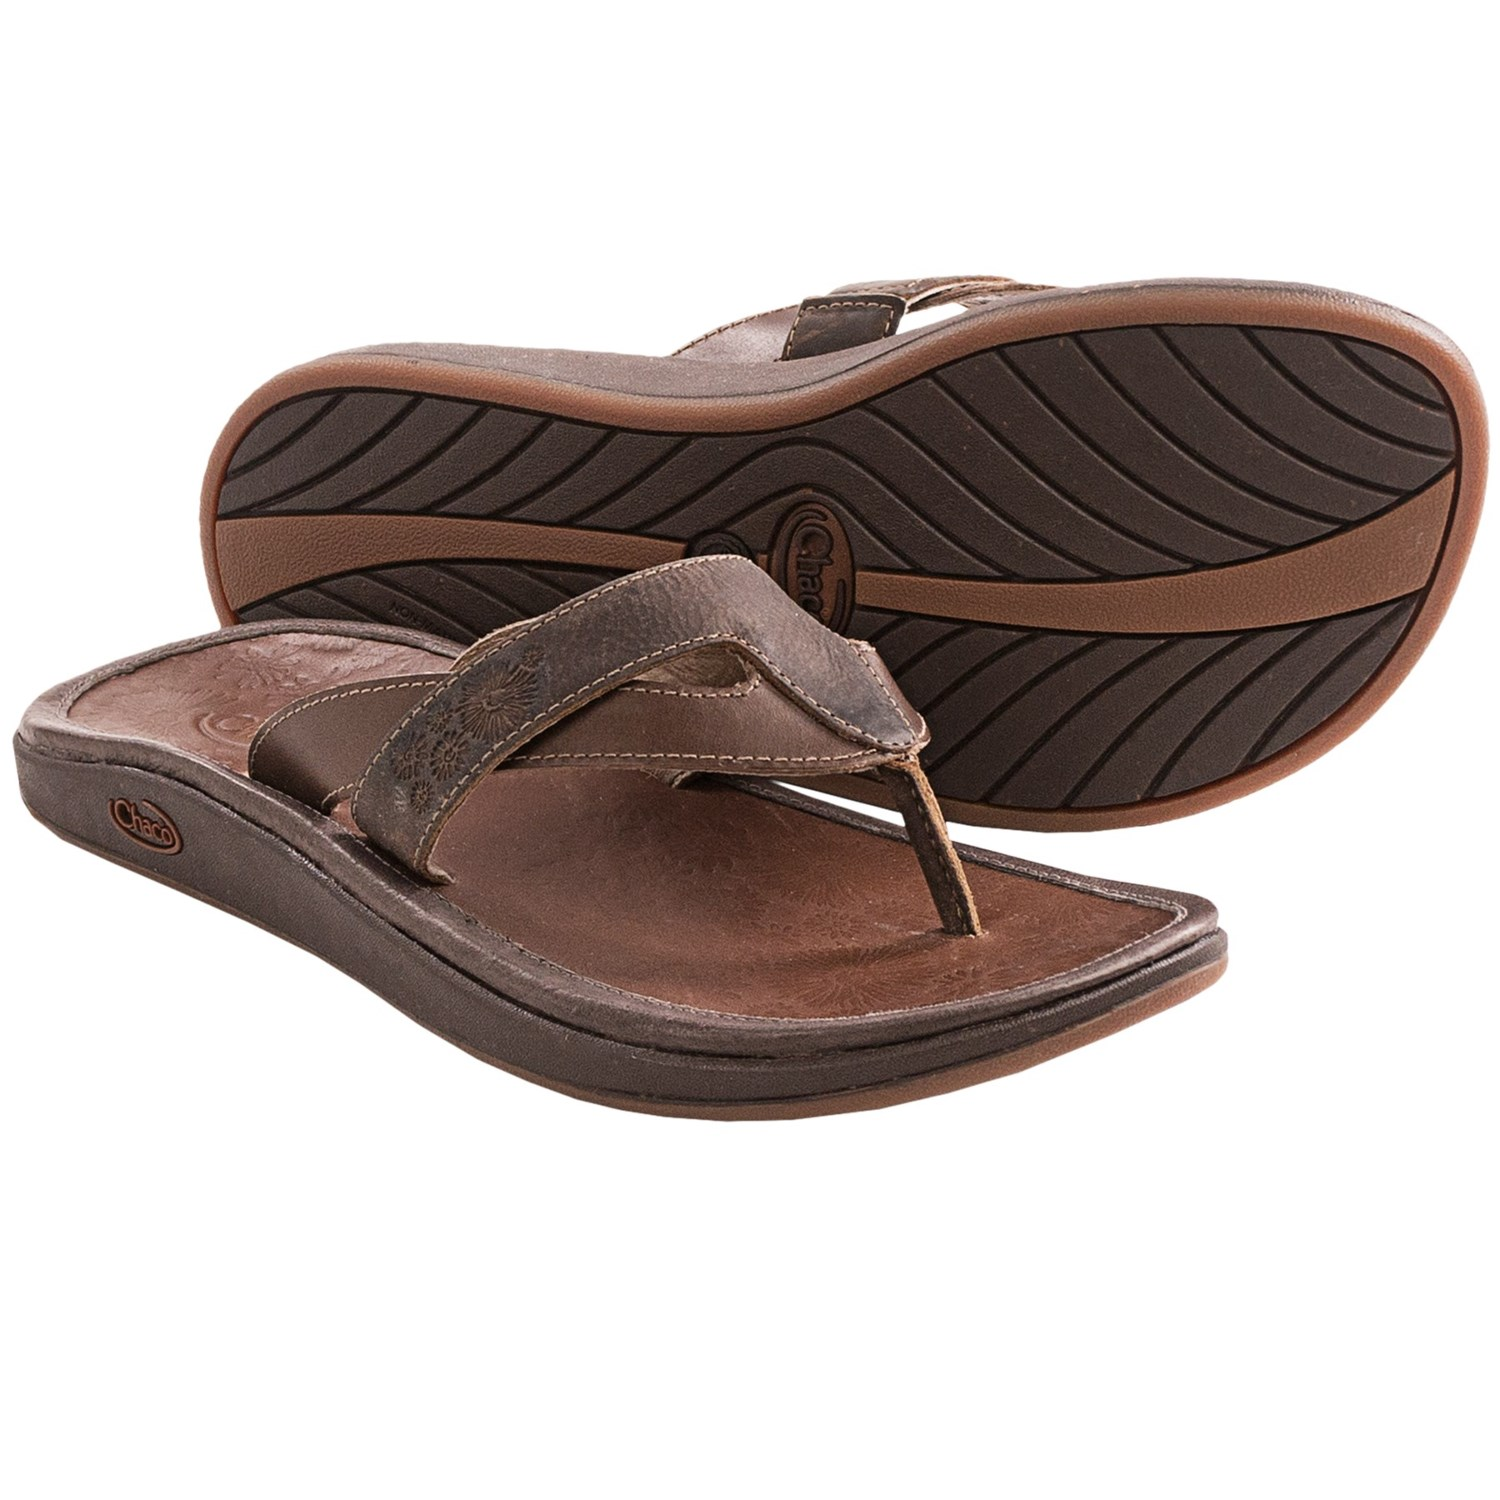 Chaco - Sandals, Shoes, & Boots | Backcountry.com